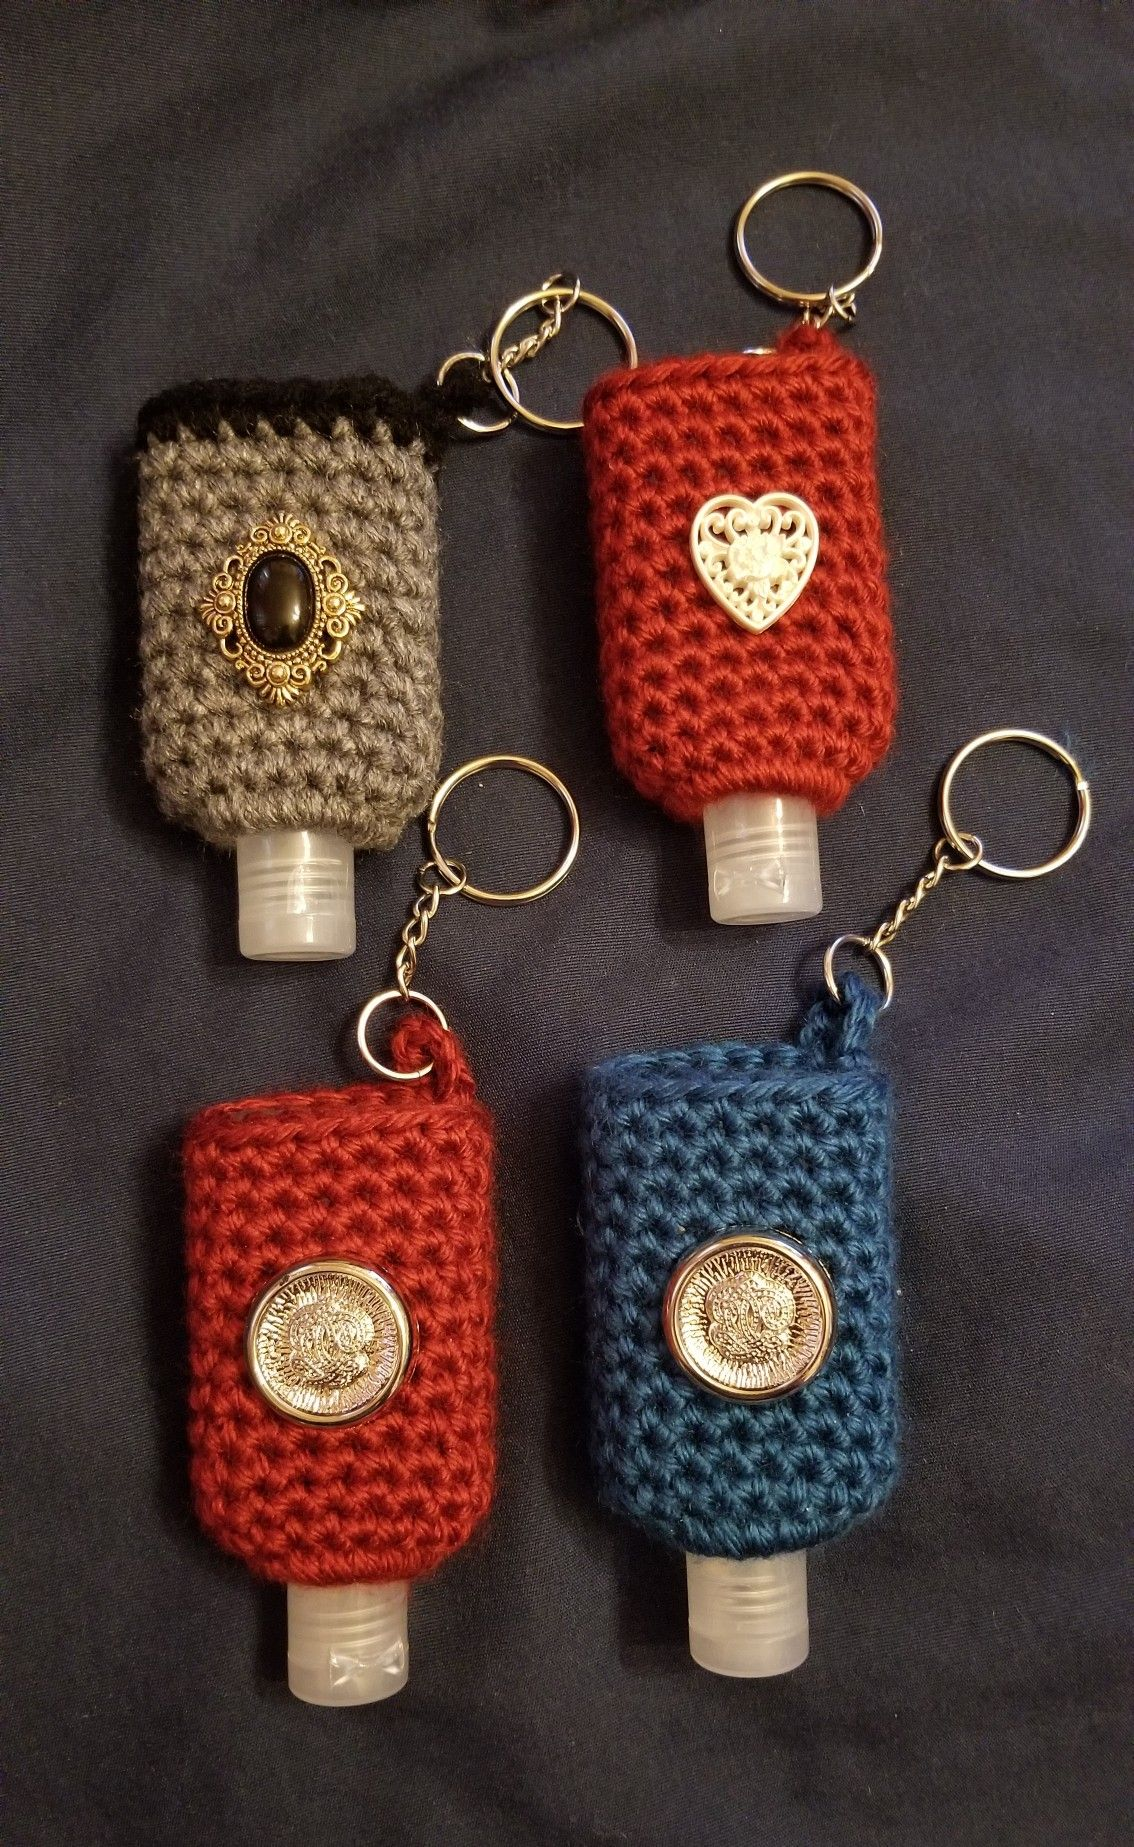 Hand Sanitizer Crochet Covers Crochet Crochet Earrings